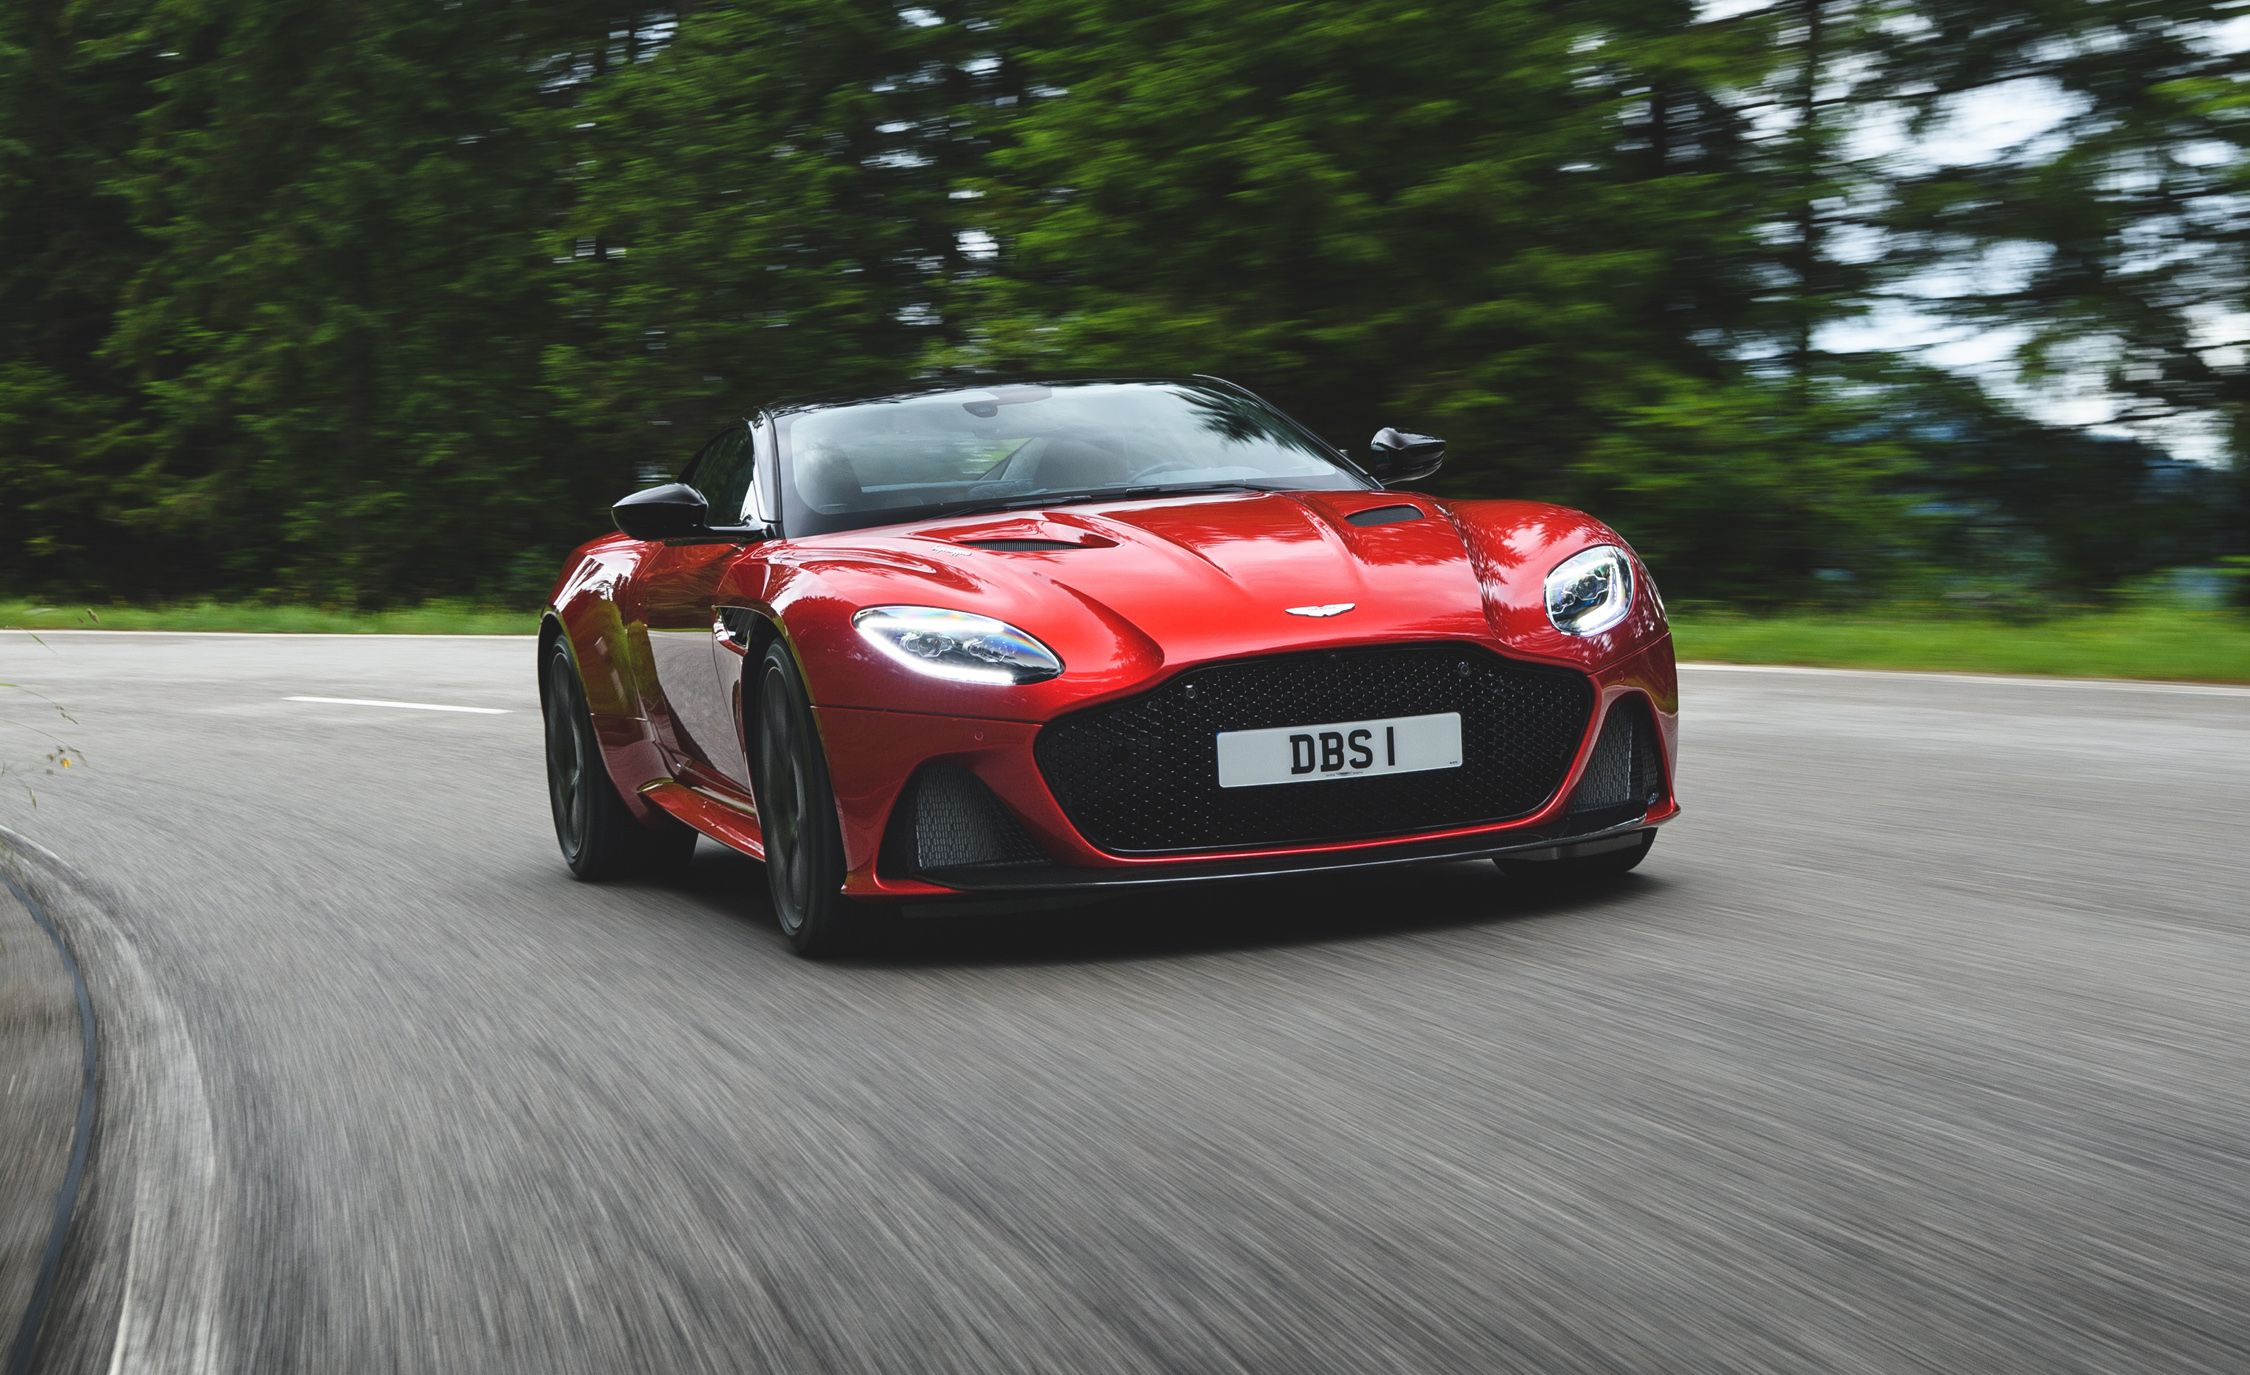 2019 aston martin dbs superleggera: it's super, all right | review